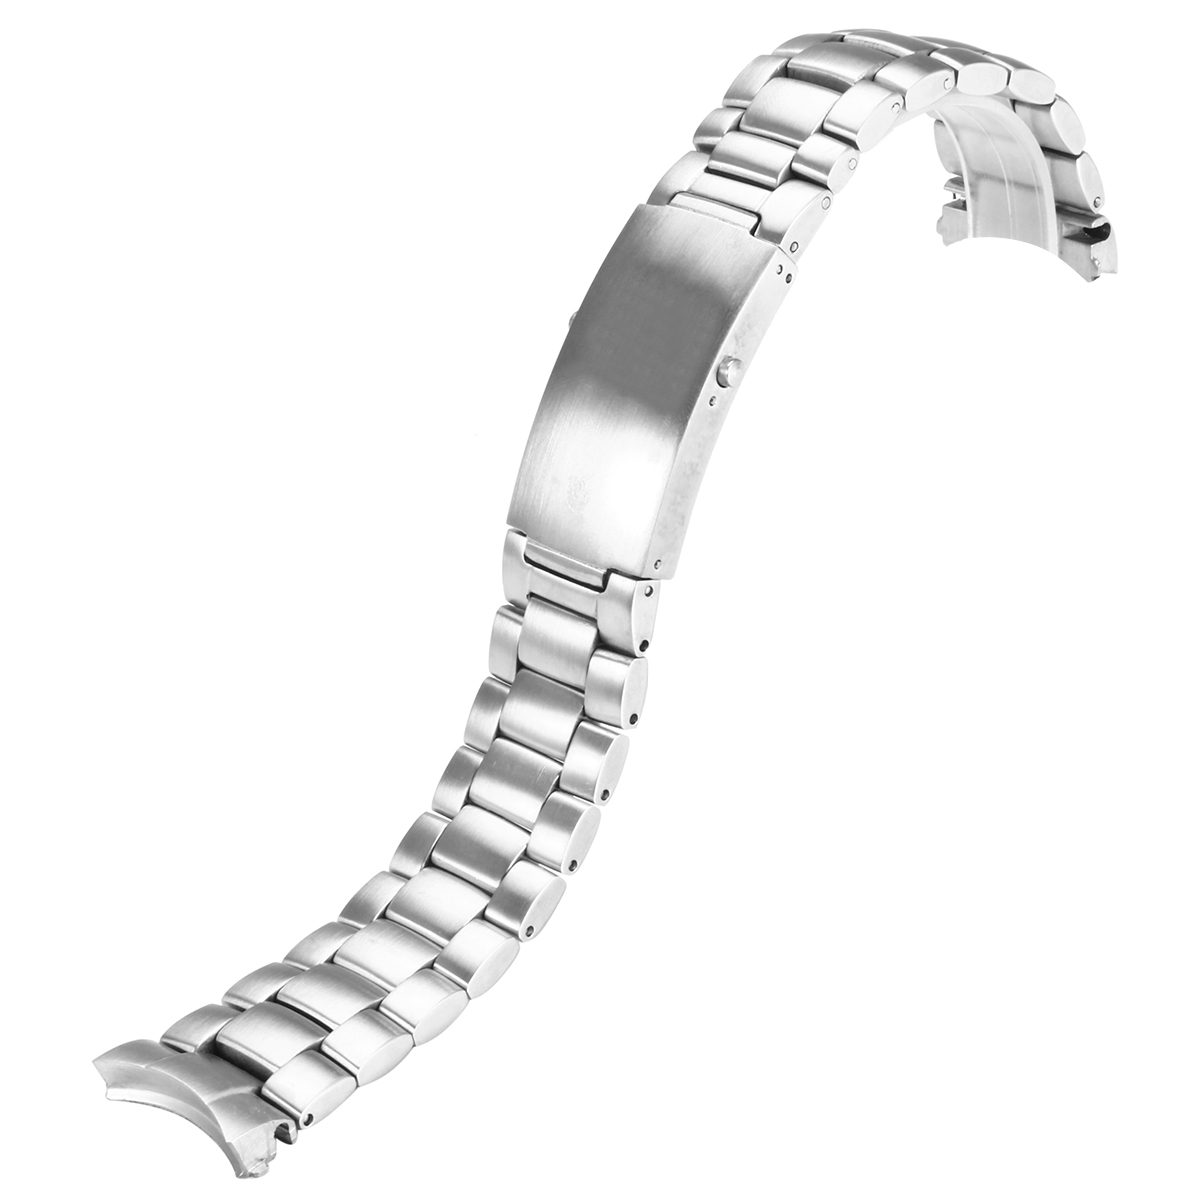 22mm Watch Band Polished Stainess Steel For Omega Seamaster